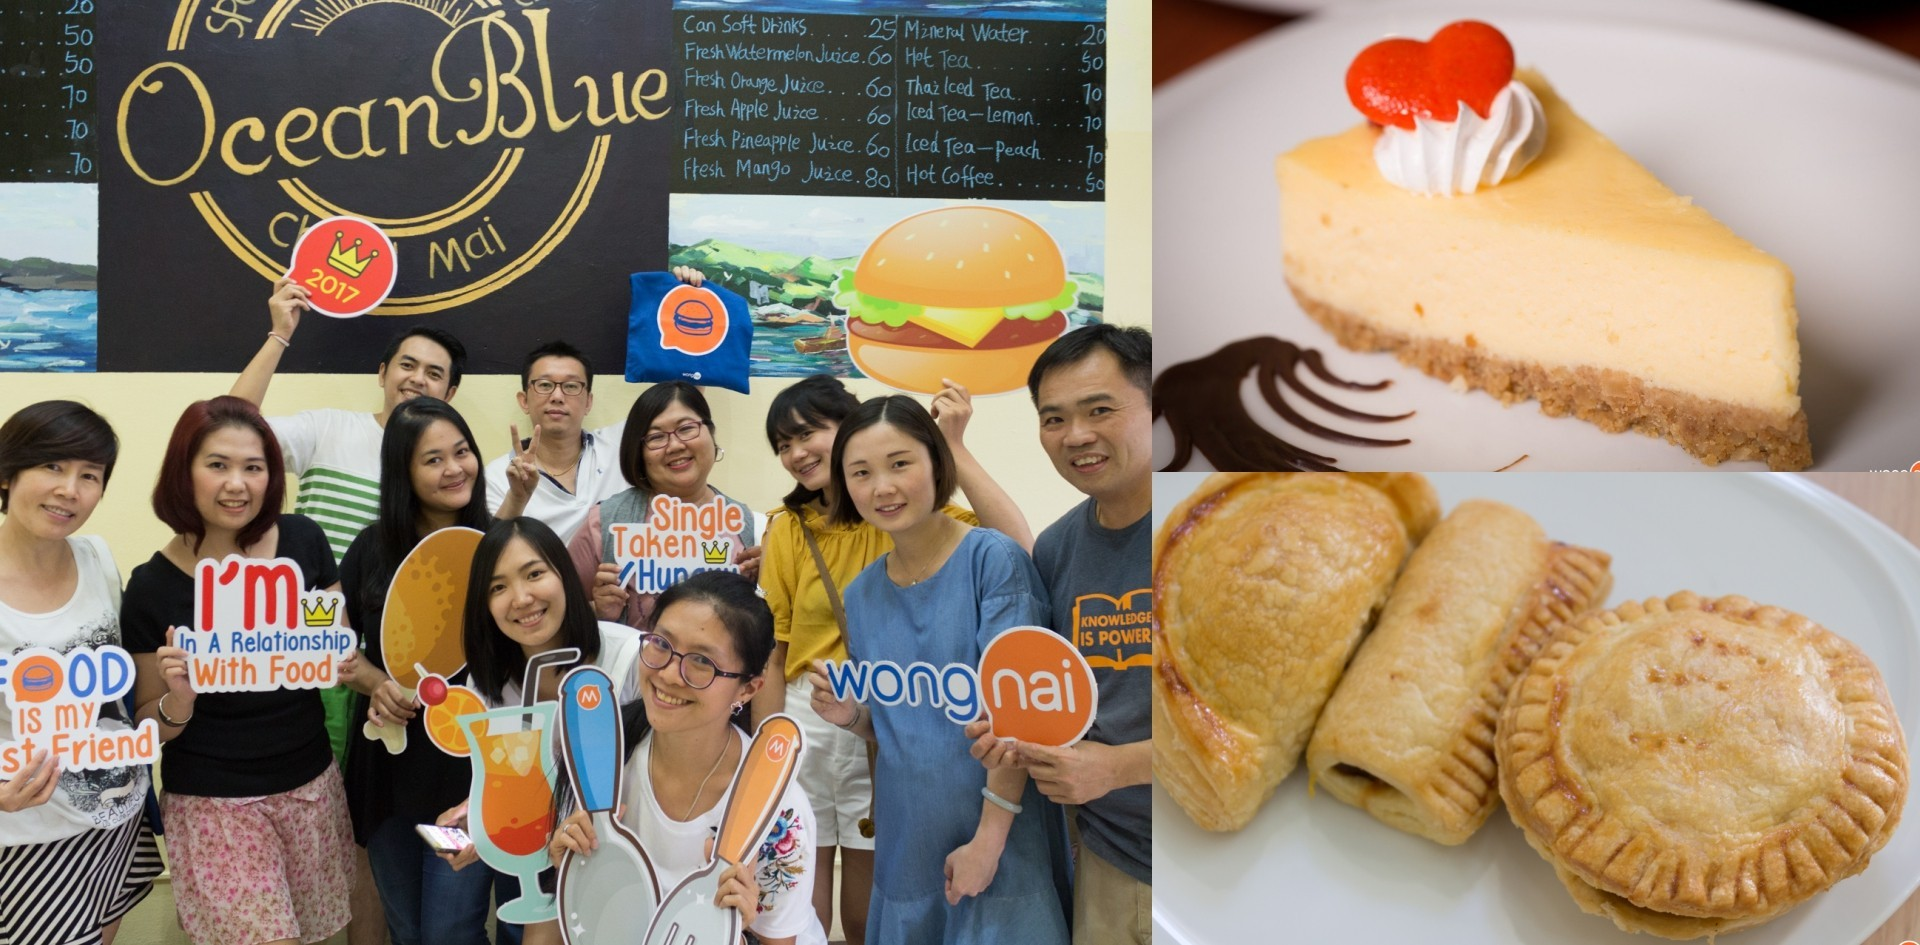 Wongnai Chiang Mai Top User Party#30 @Ocean Blue Bakery Cafe